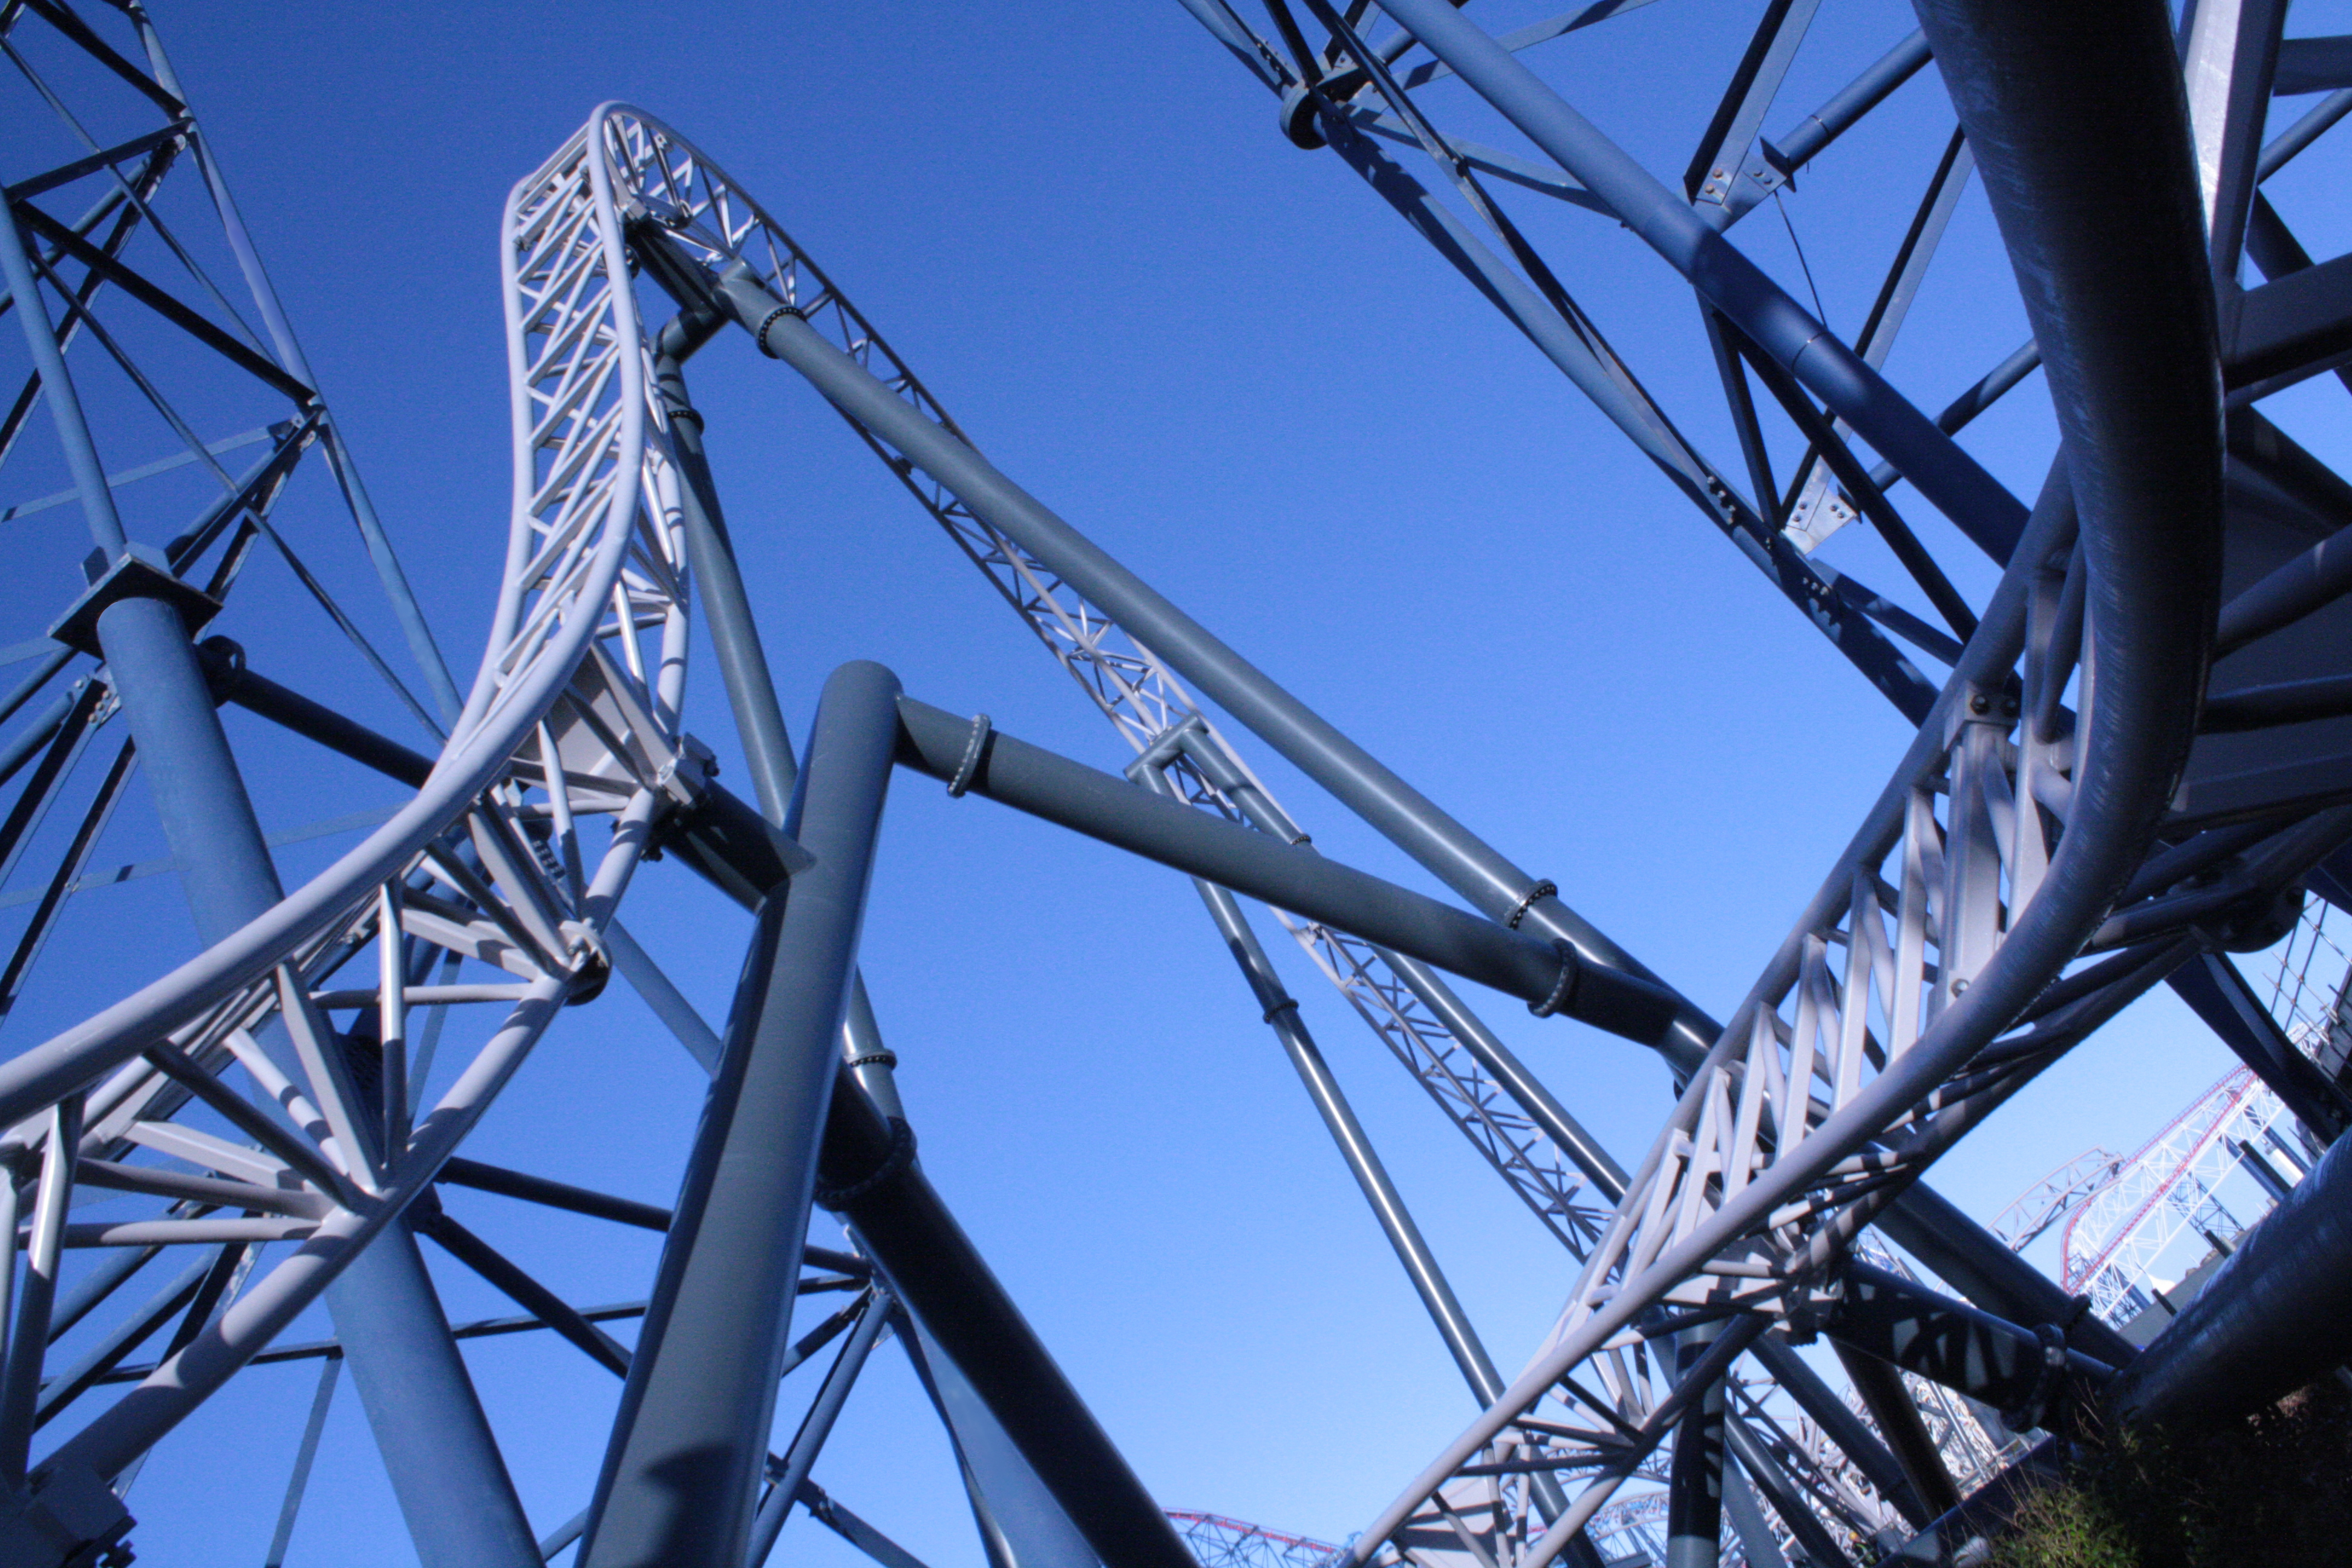 ICON soars through the lift hill of the famous Big One rollercoaster